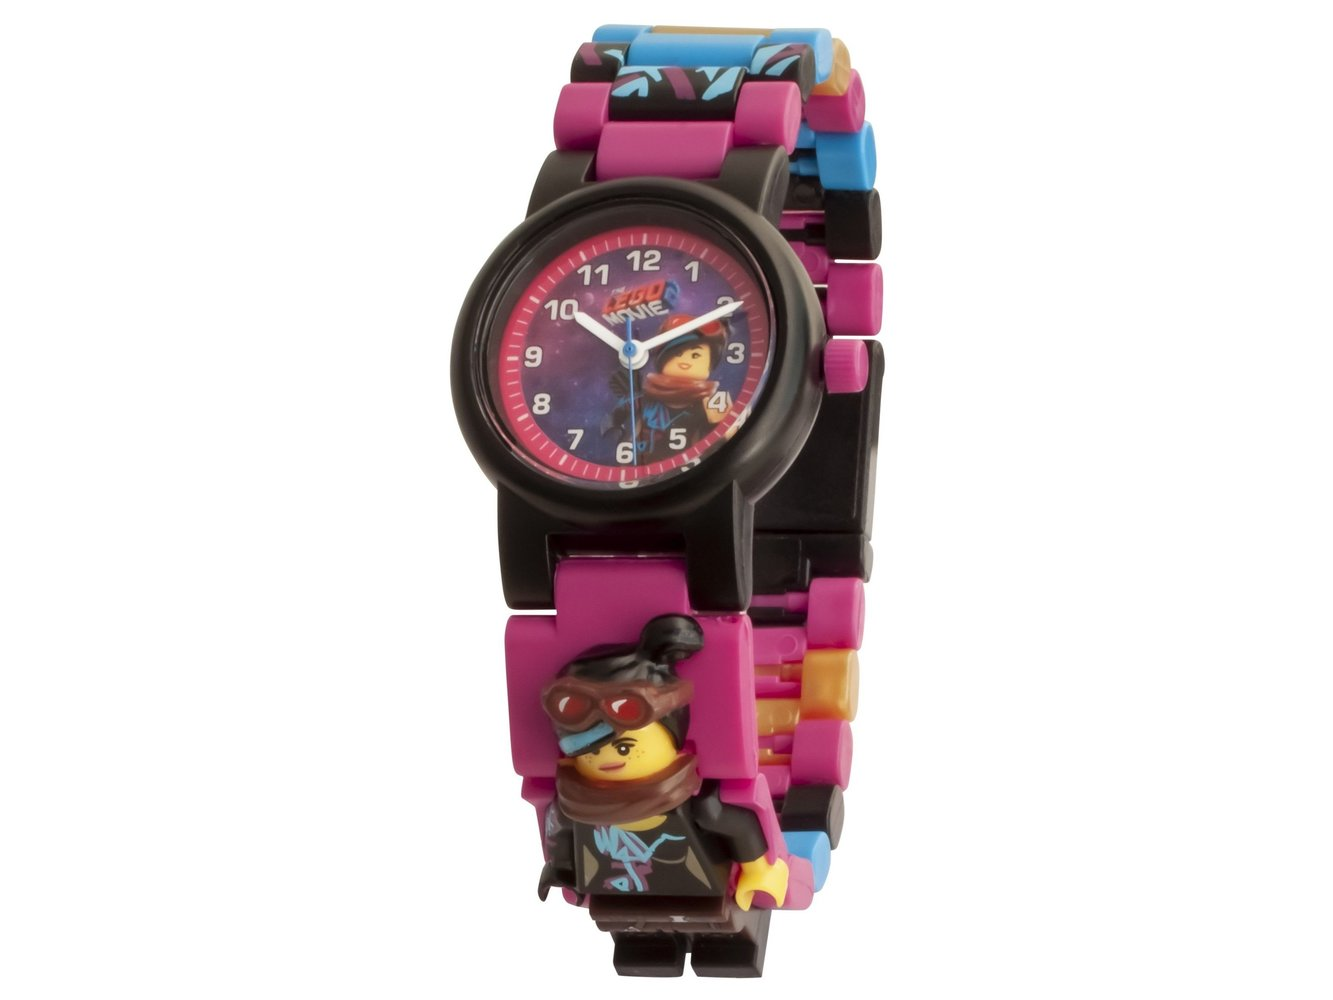 Wyldstyle Buildable Watch